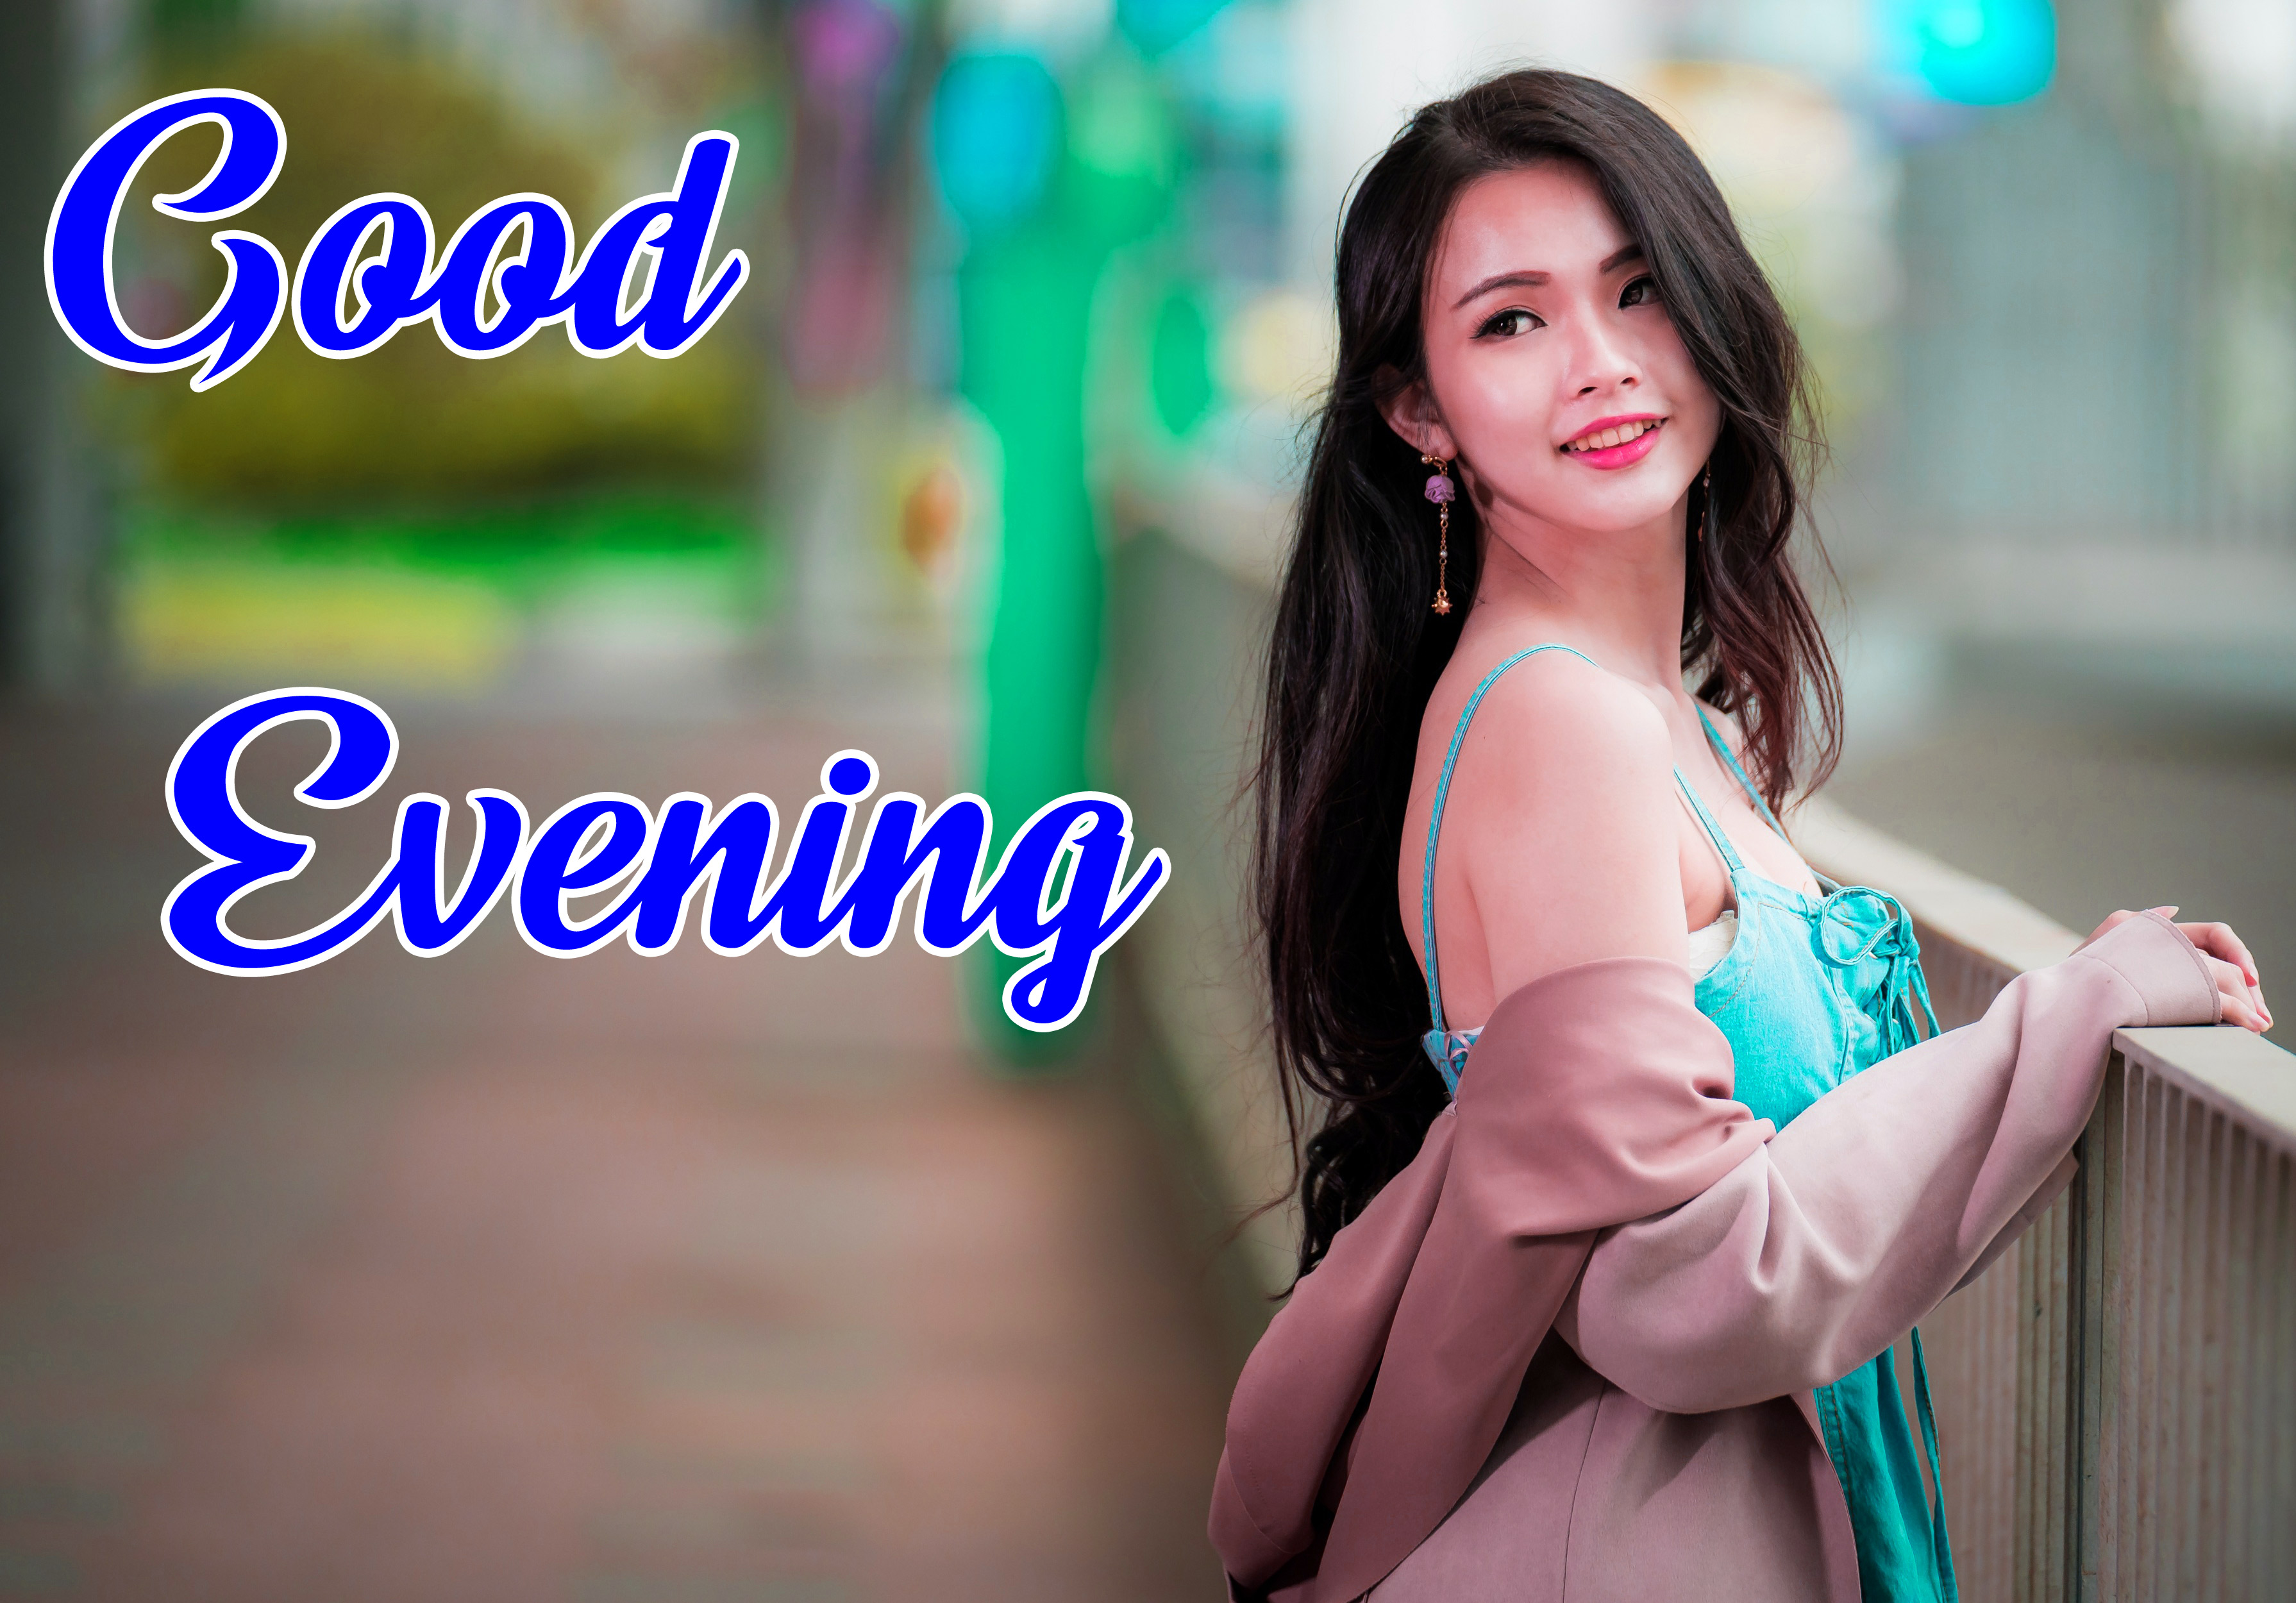 good Evening Images for girls 7